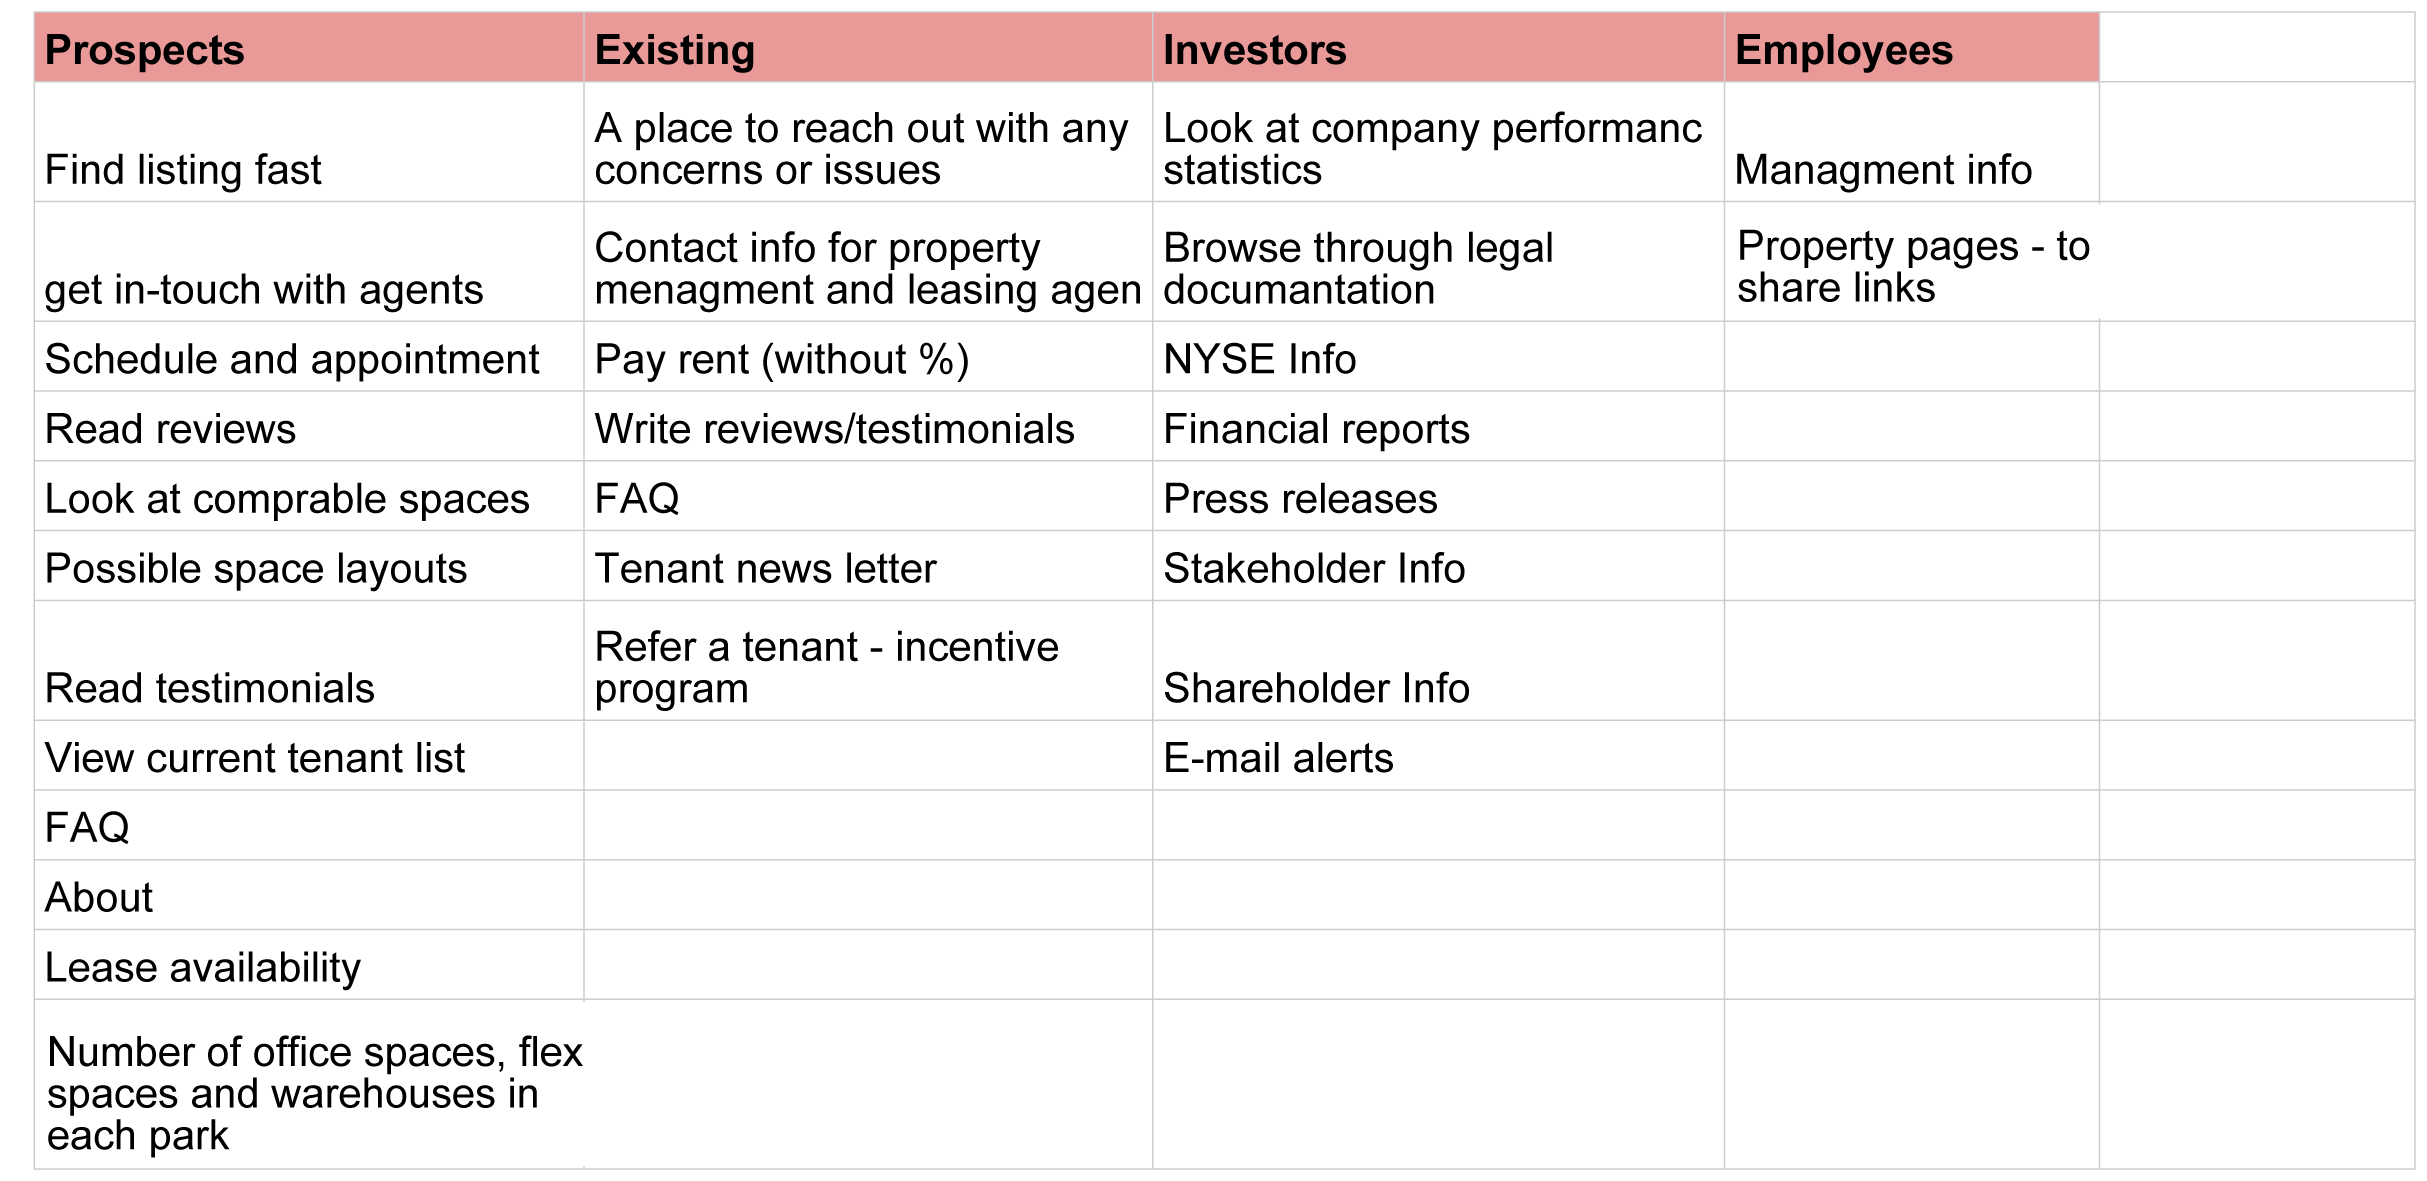 PS Business Parks Targeted Audiance - Sheet1.png